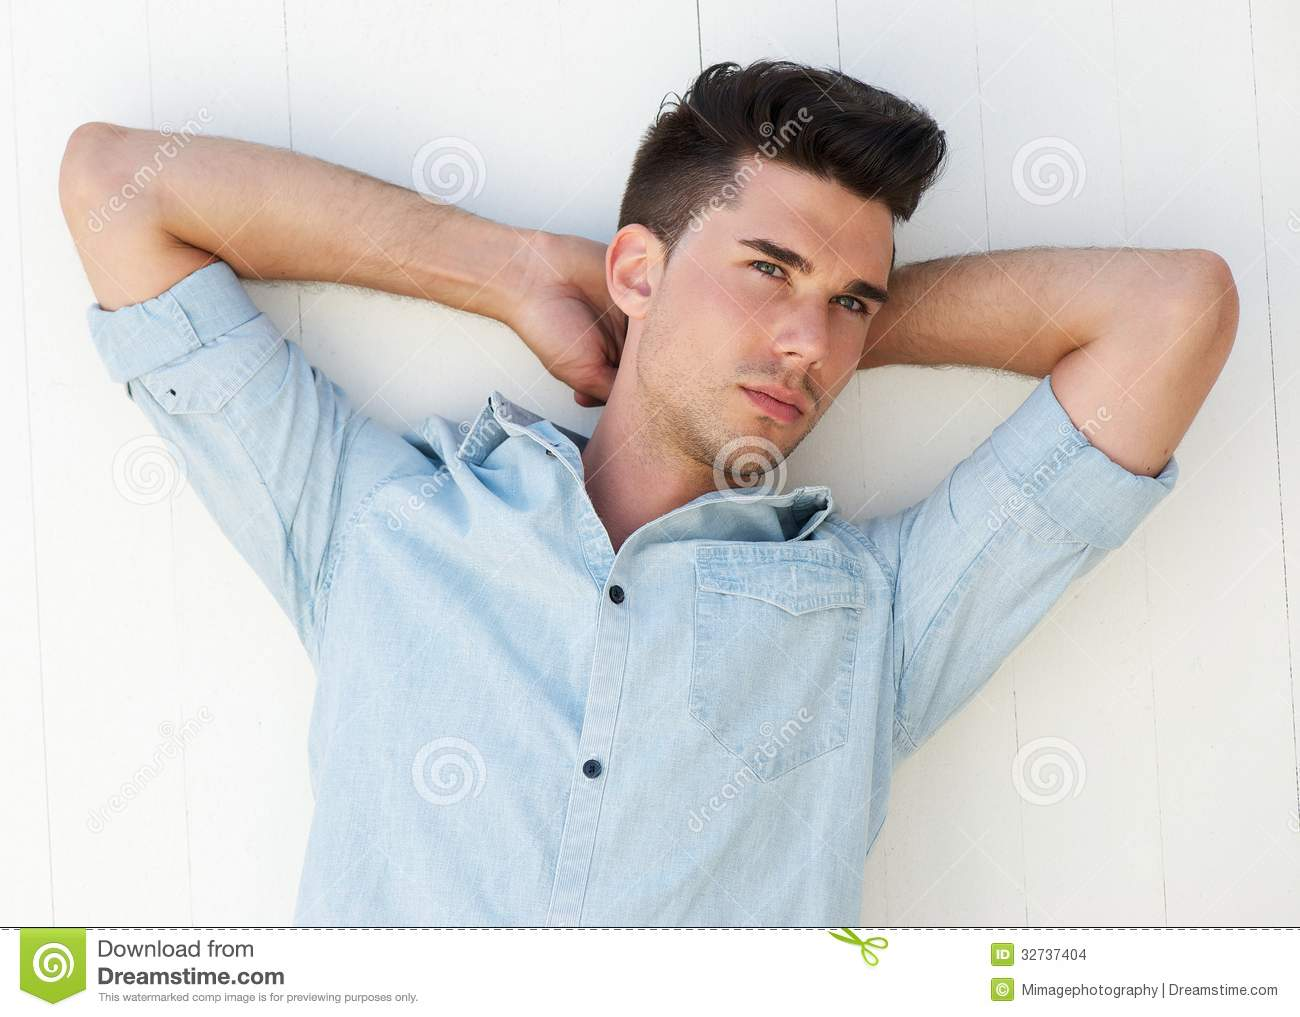 Male Fashion Model With Arms Raised Behind Head Stock